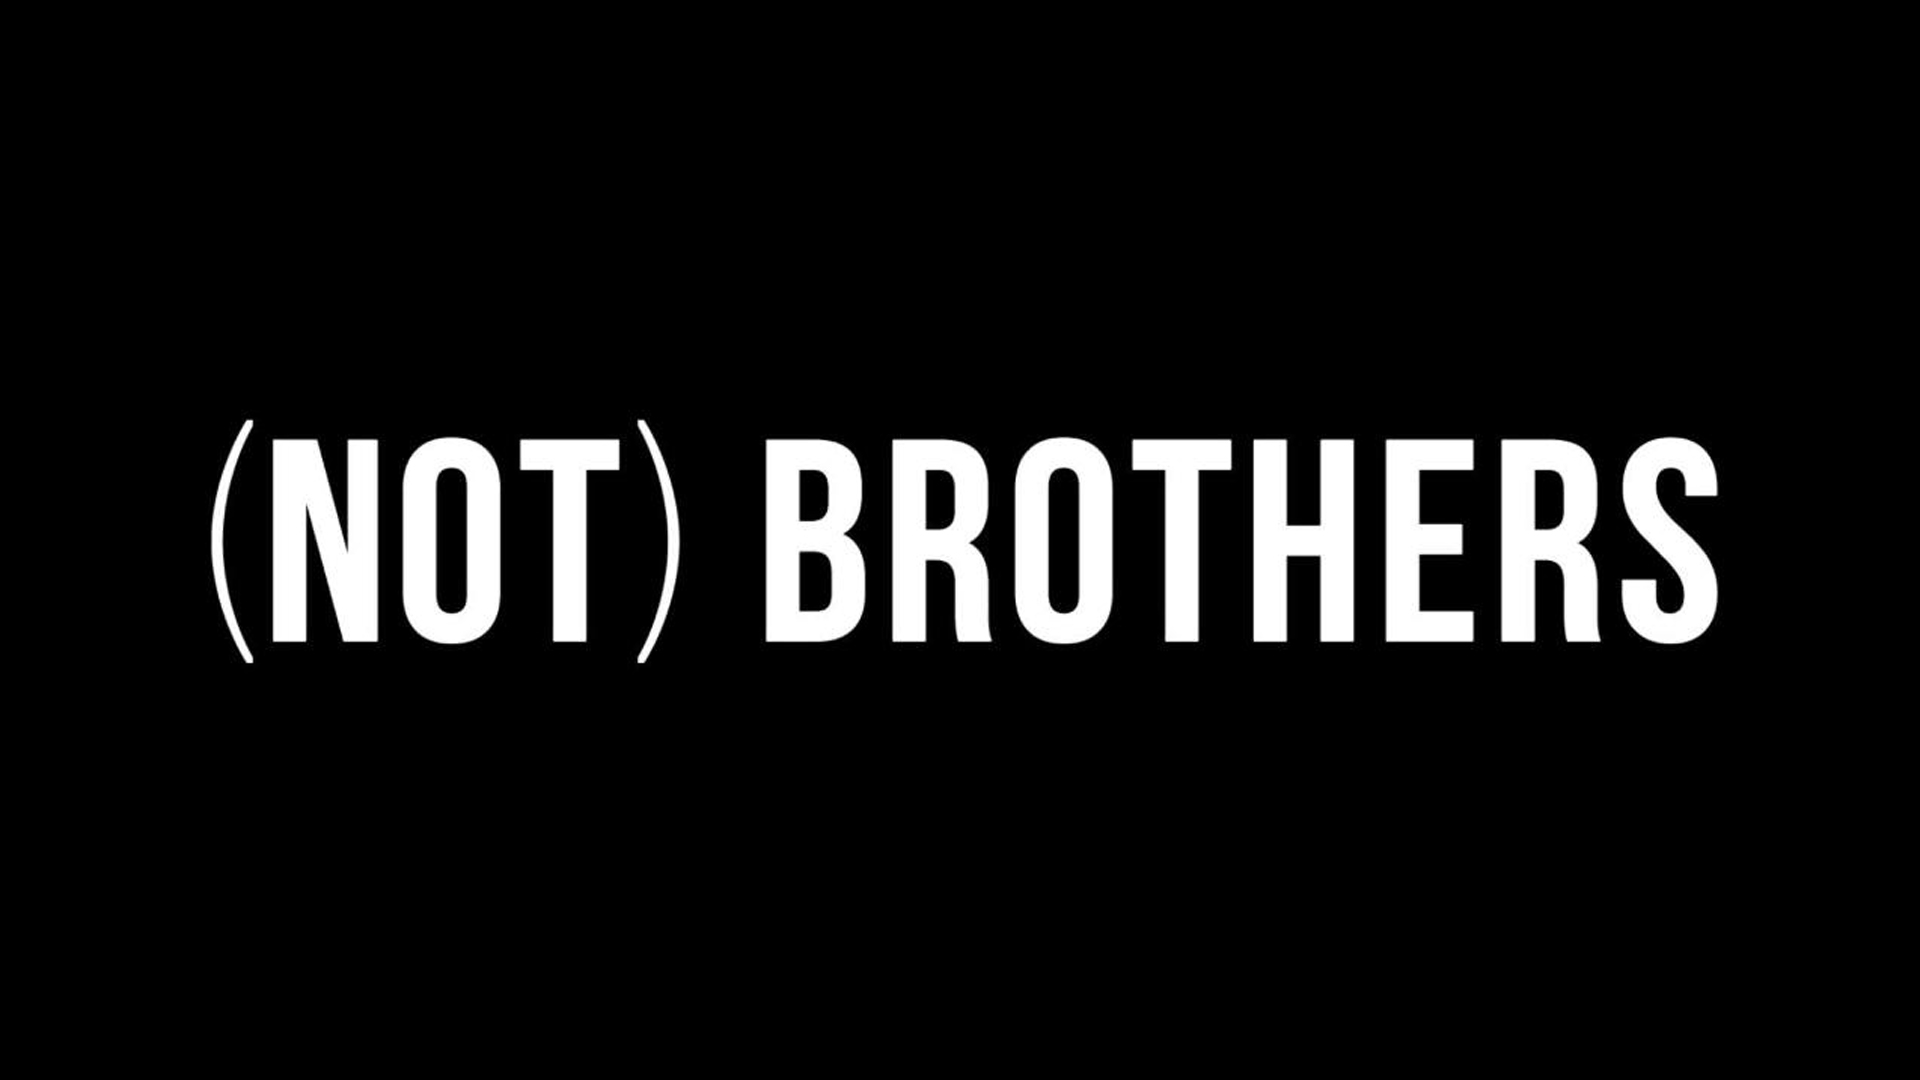 (NOT) BROTHERS